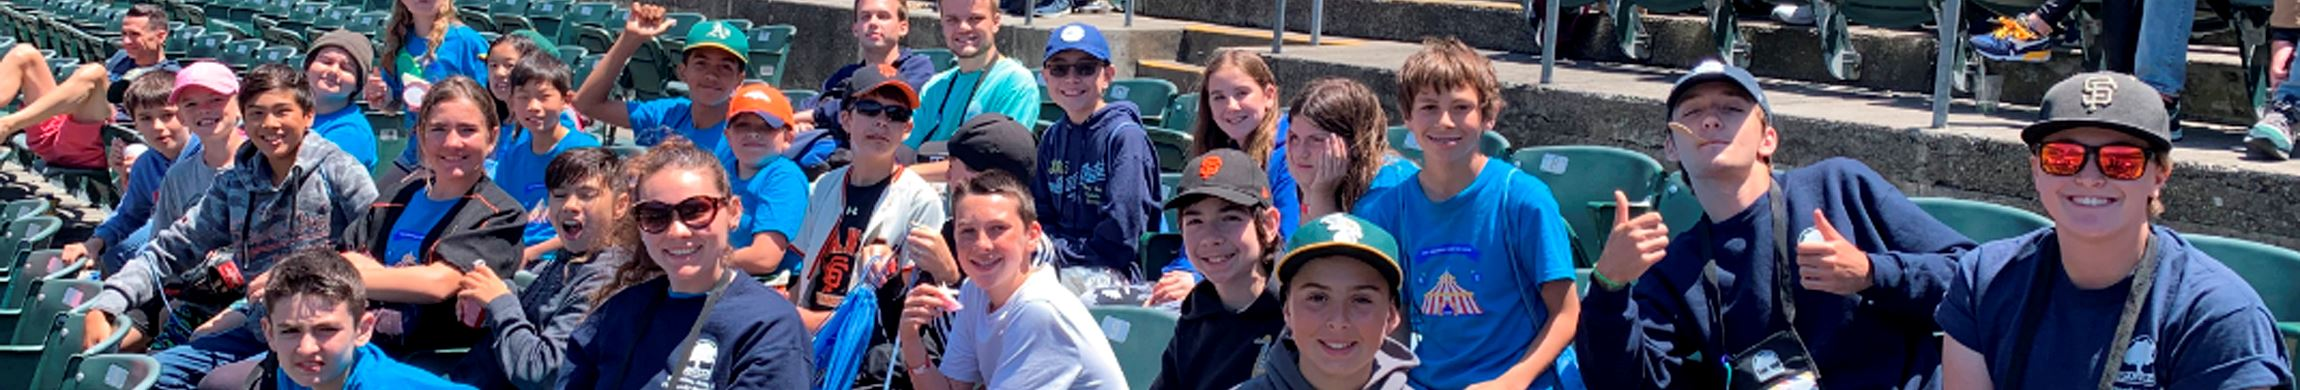 DesTEENation teens at Baseball Game